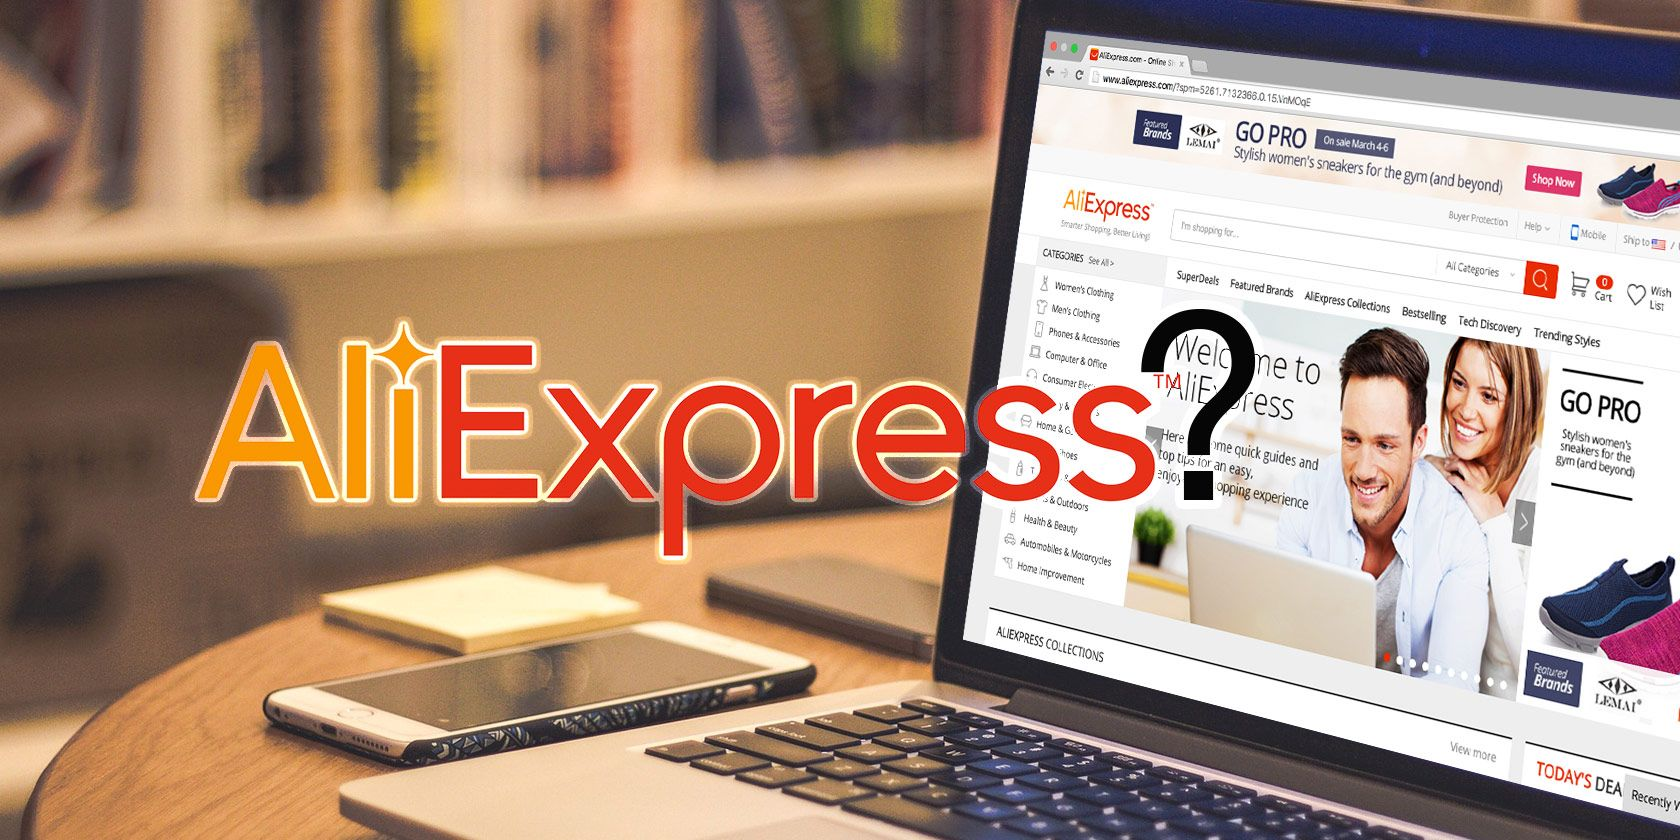 Risks with AliExpress ordering – payment, shipping, customs